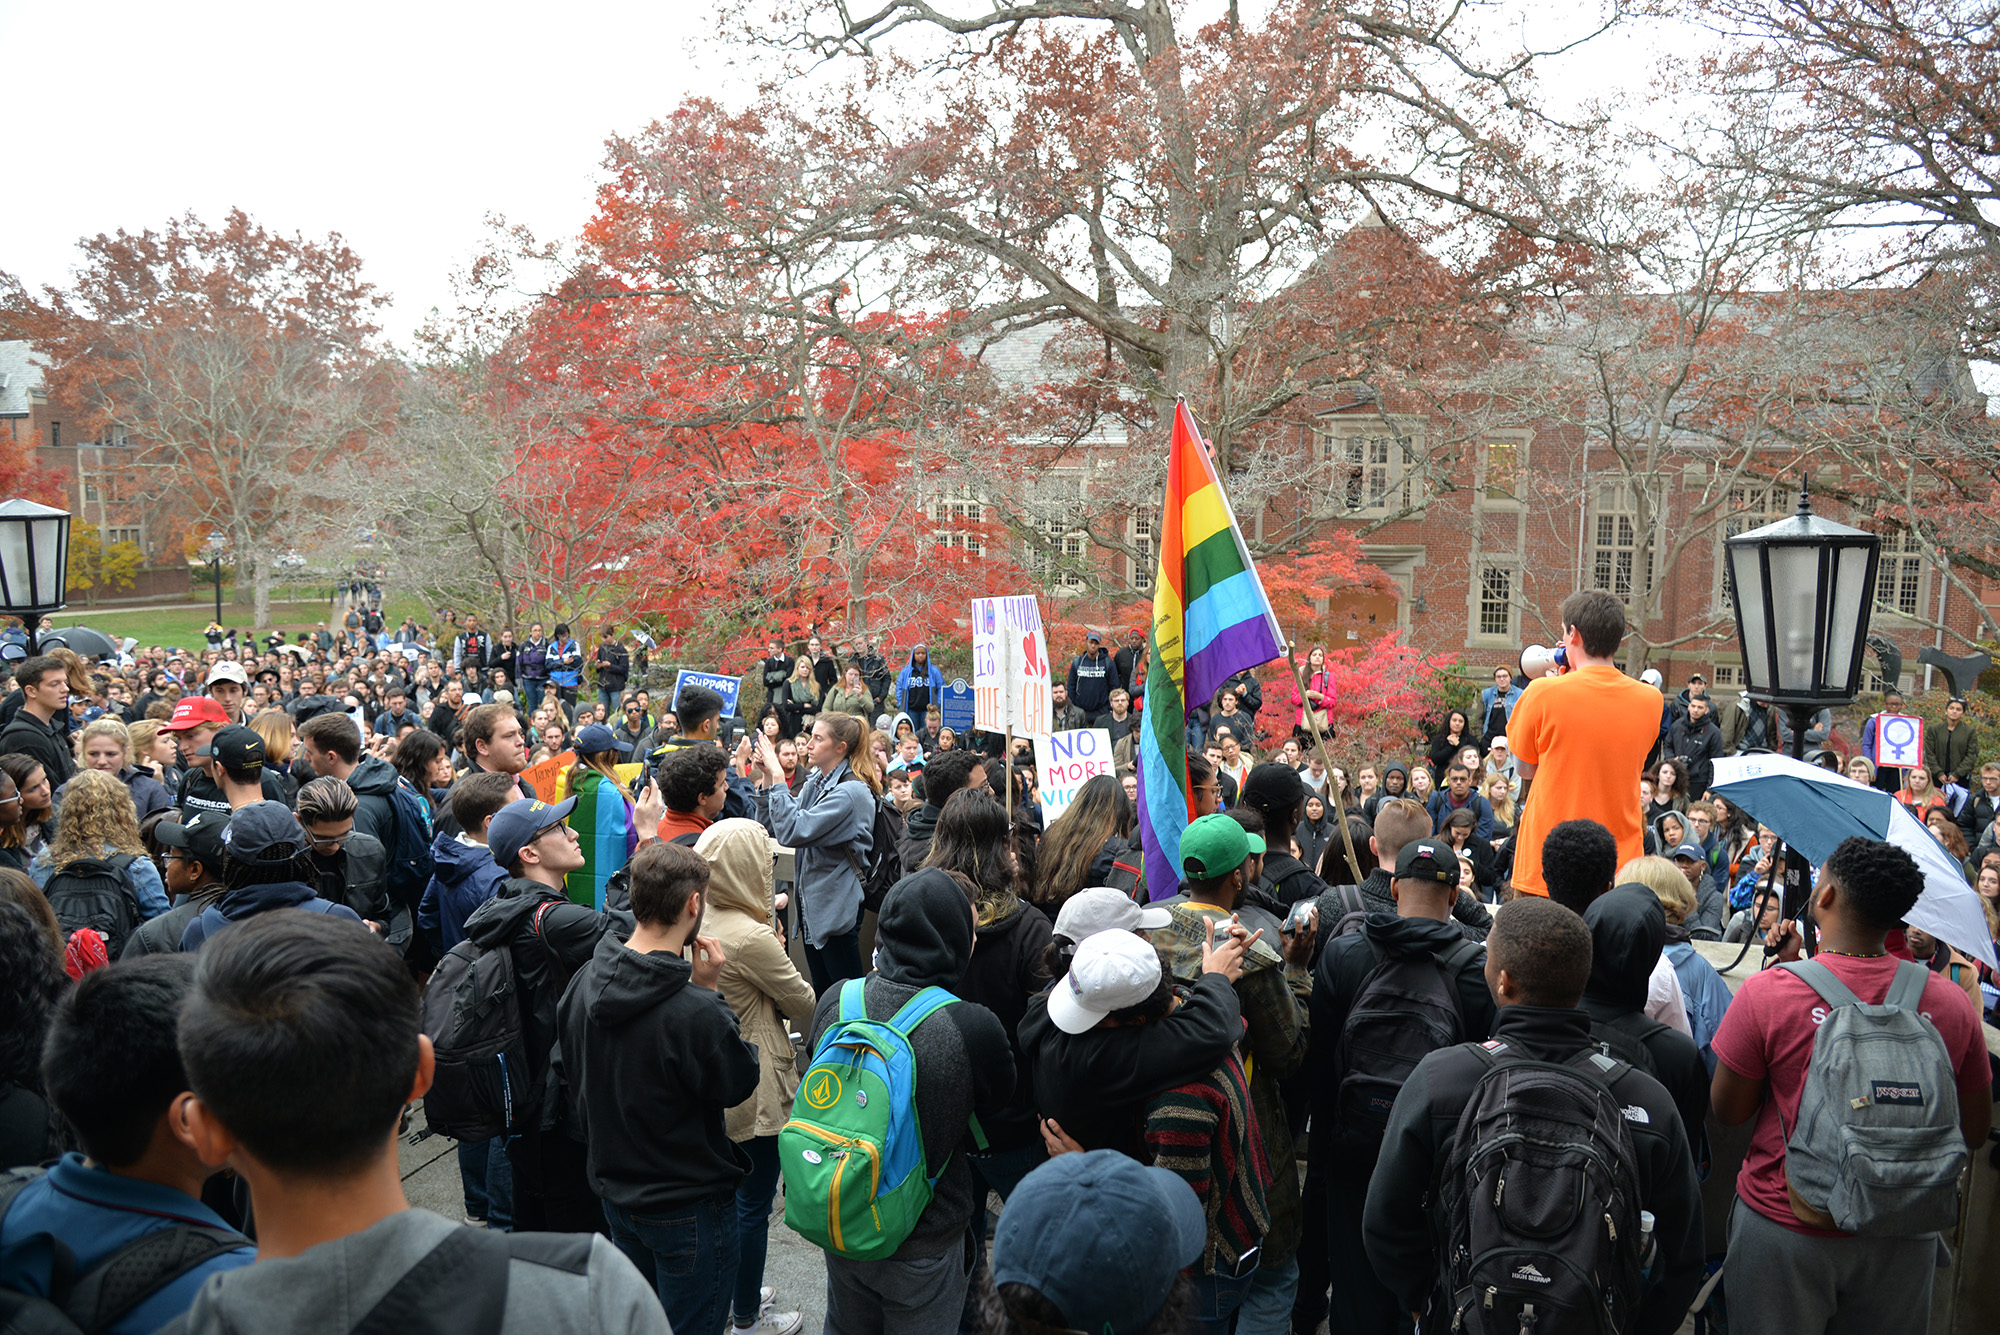 """Mr. Trump is not my President,"" was the rallying cry heard around campus on Nov. 8,2016, intermingled with emotional stories from students belonging to various minority groups on campus. Hundreds of students and other members of the UConn community gathered at Fairfield Way on Wednesday, November 9, to stage a nonviolent protest speaking out against the  controversial candidacy and surprising election of President-elect Donald J. Trump. The group started at fairfield way and marched through campus before settling in front of Wilbur Cross. (Amar Batra/ The Daily Campus)"